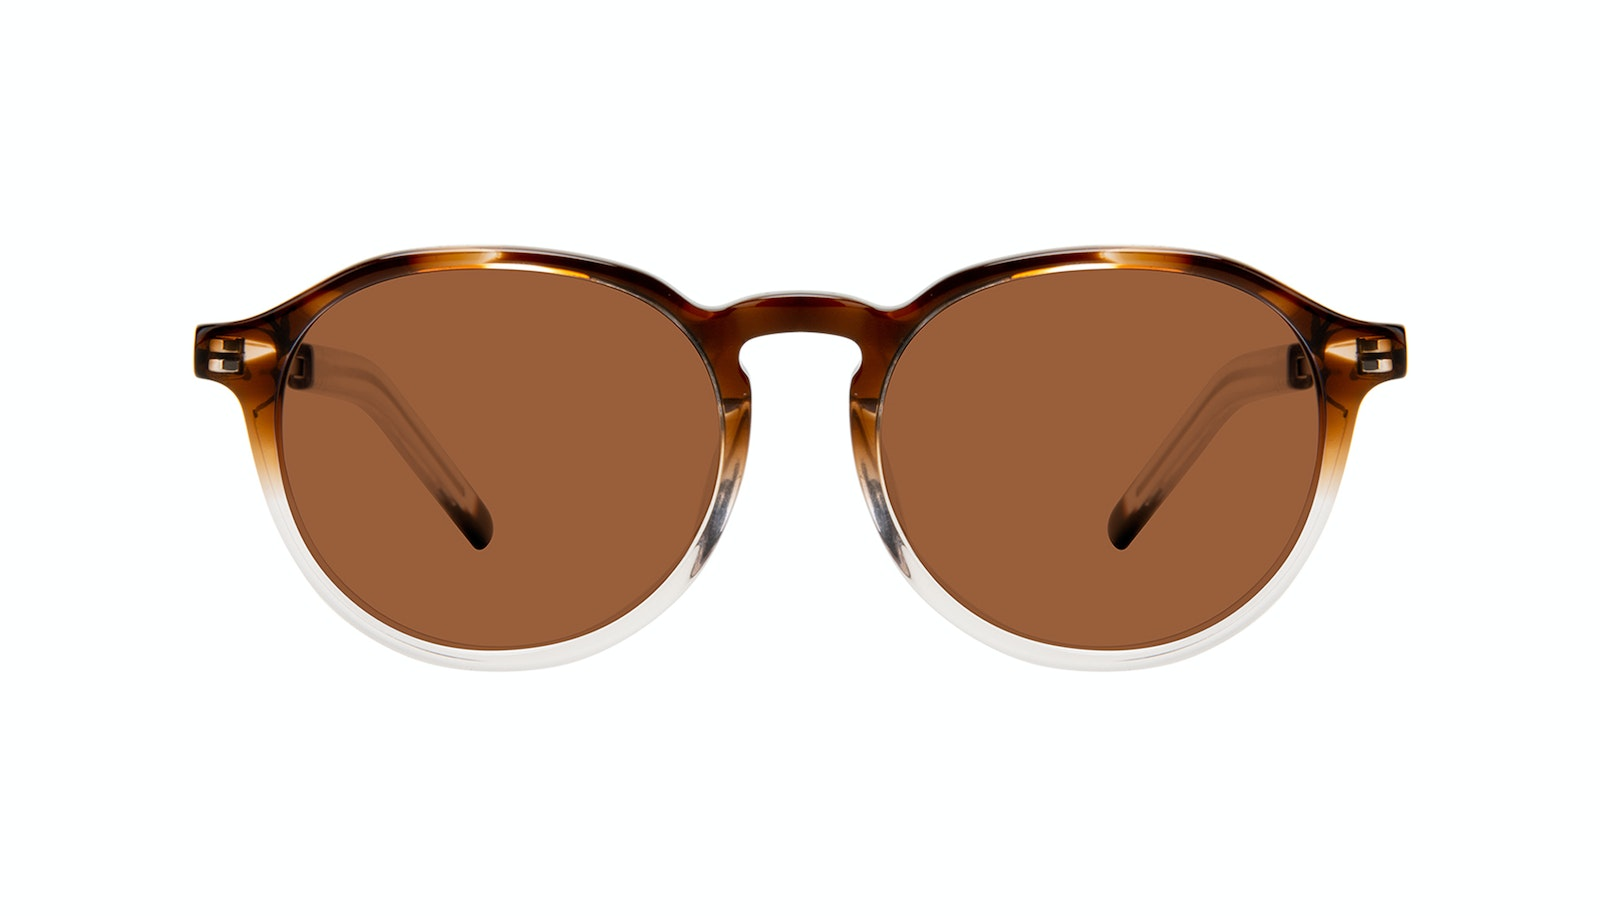 Affordable Fashion Glasses Round Sunglasses Men Prime Bark